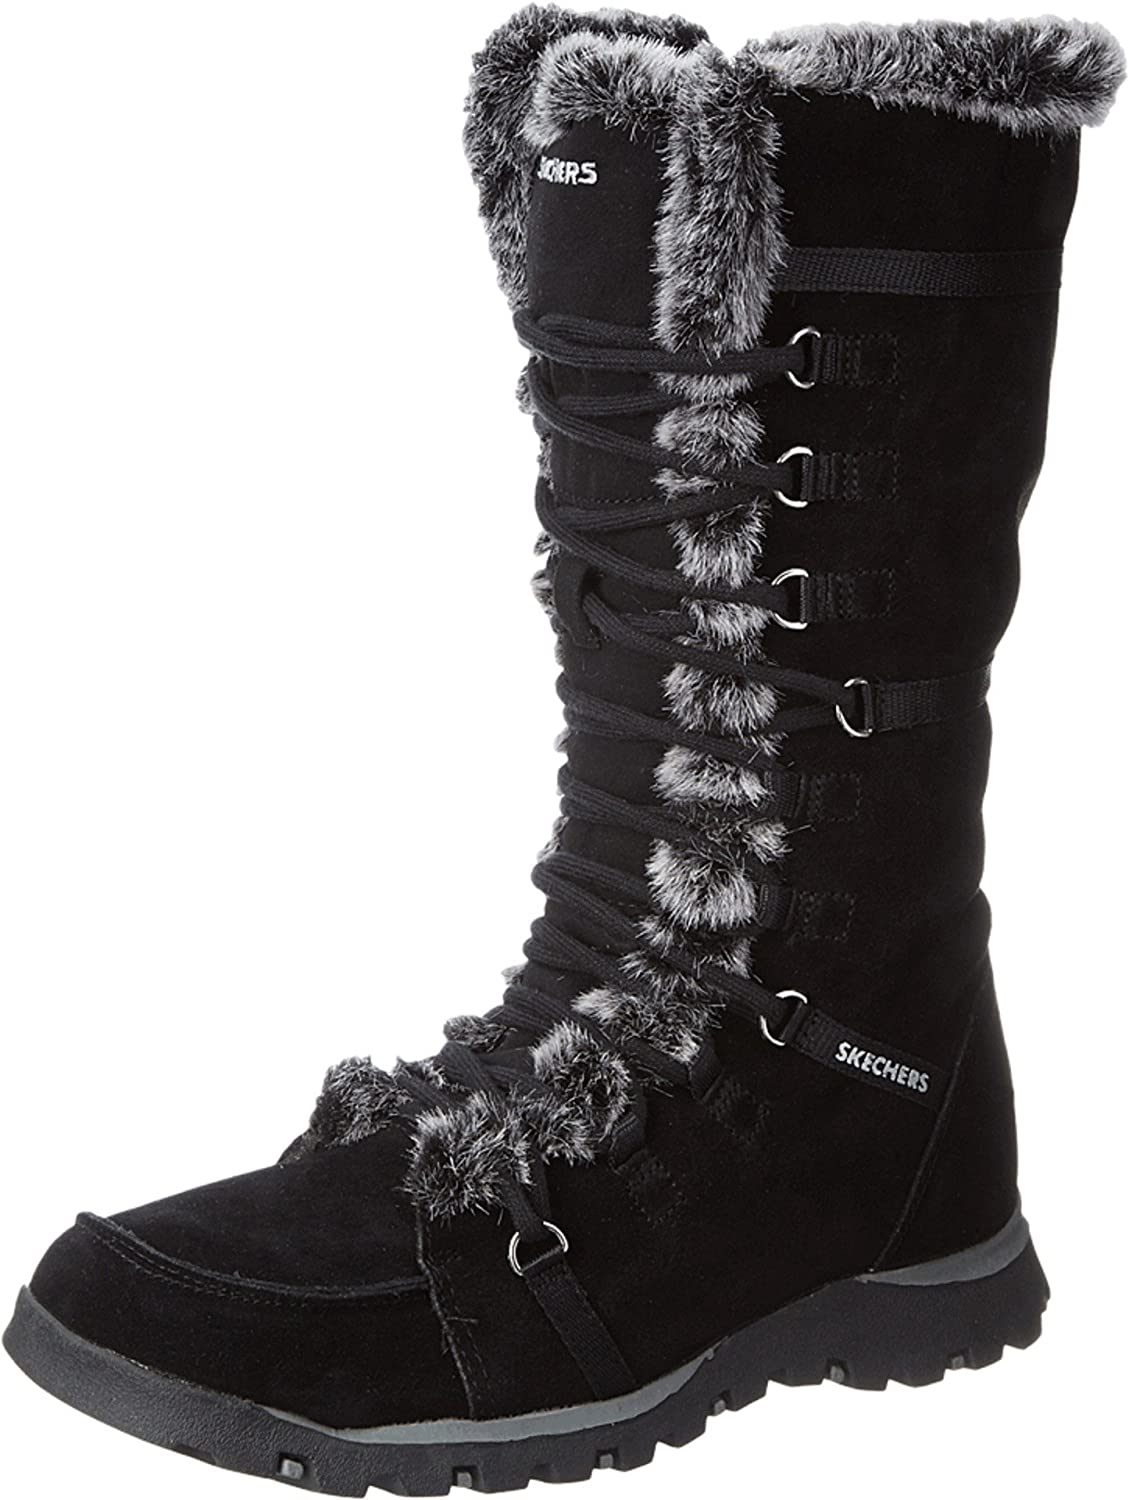 Grand Jams Unlimited Boot